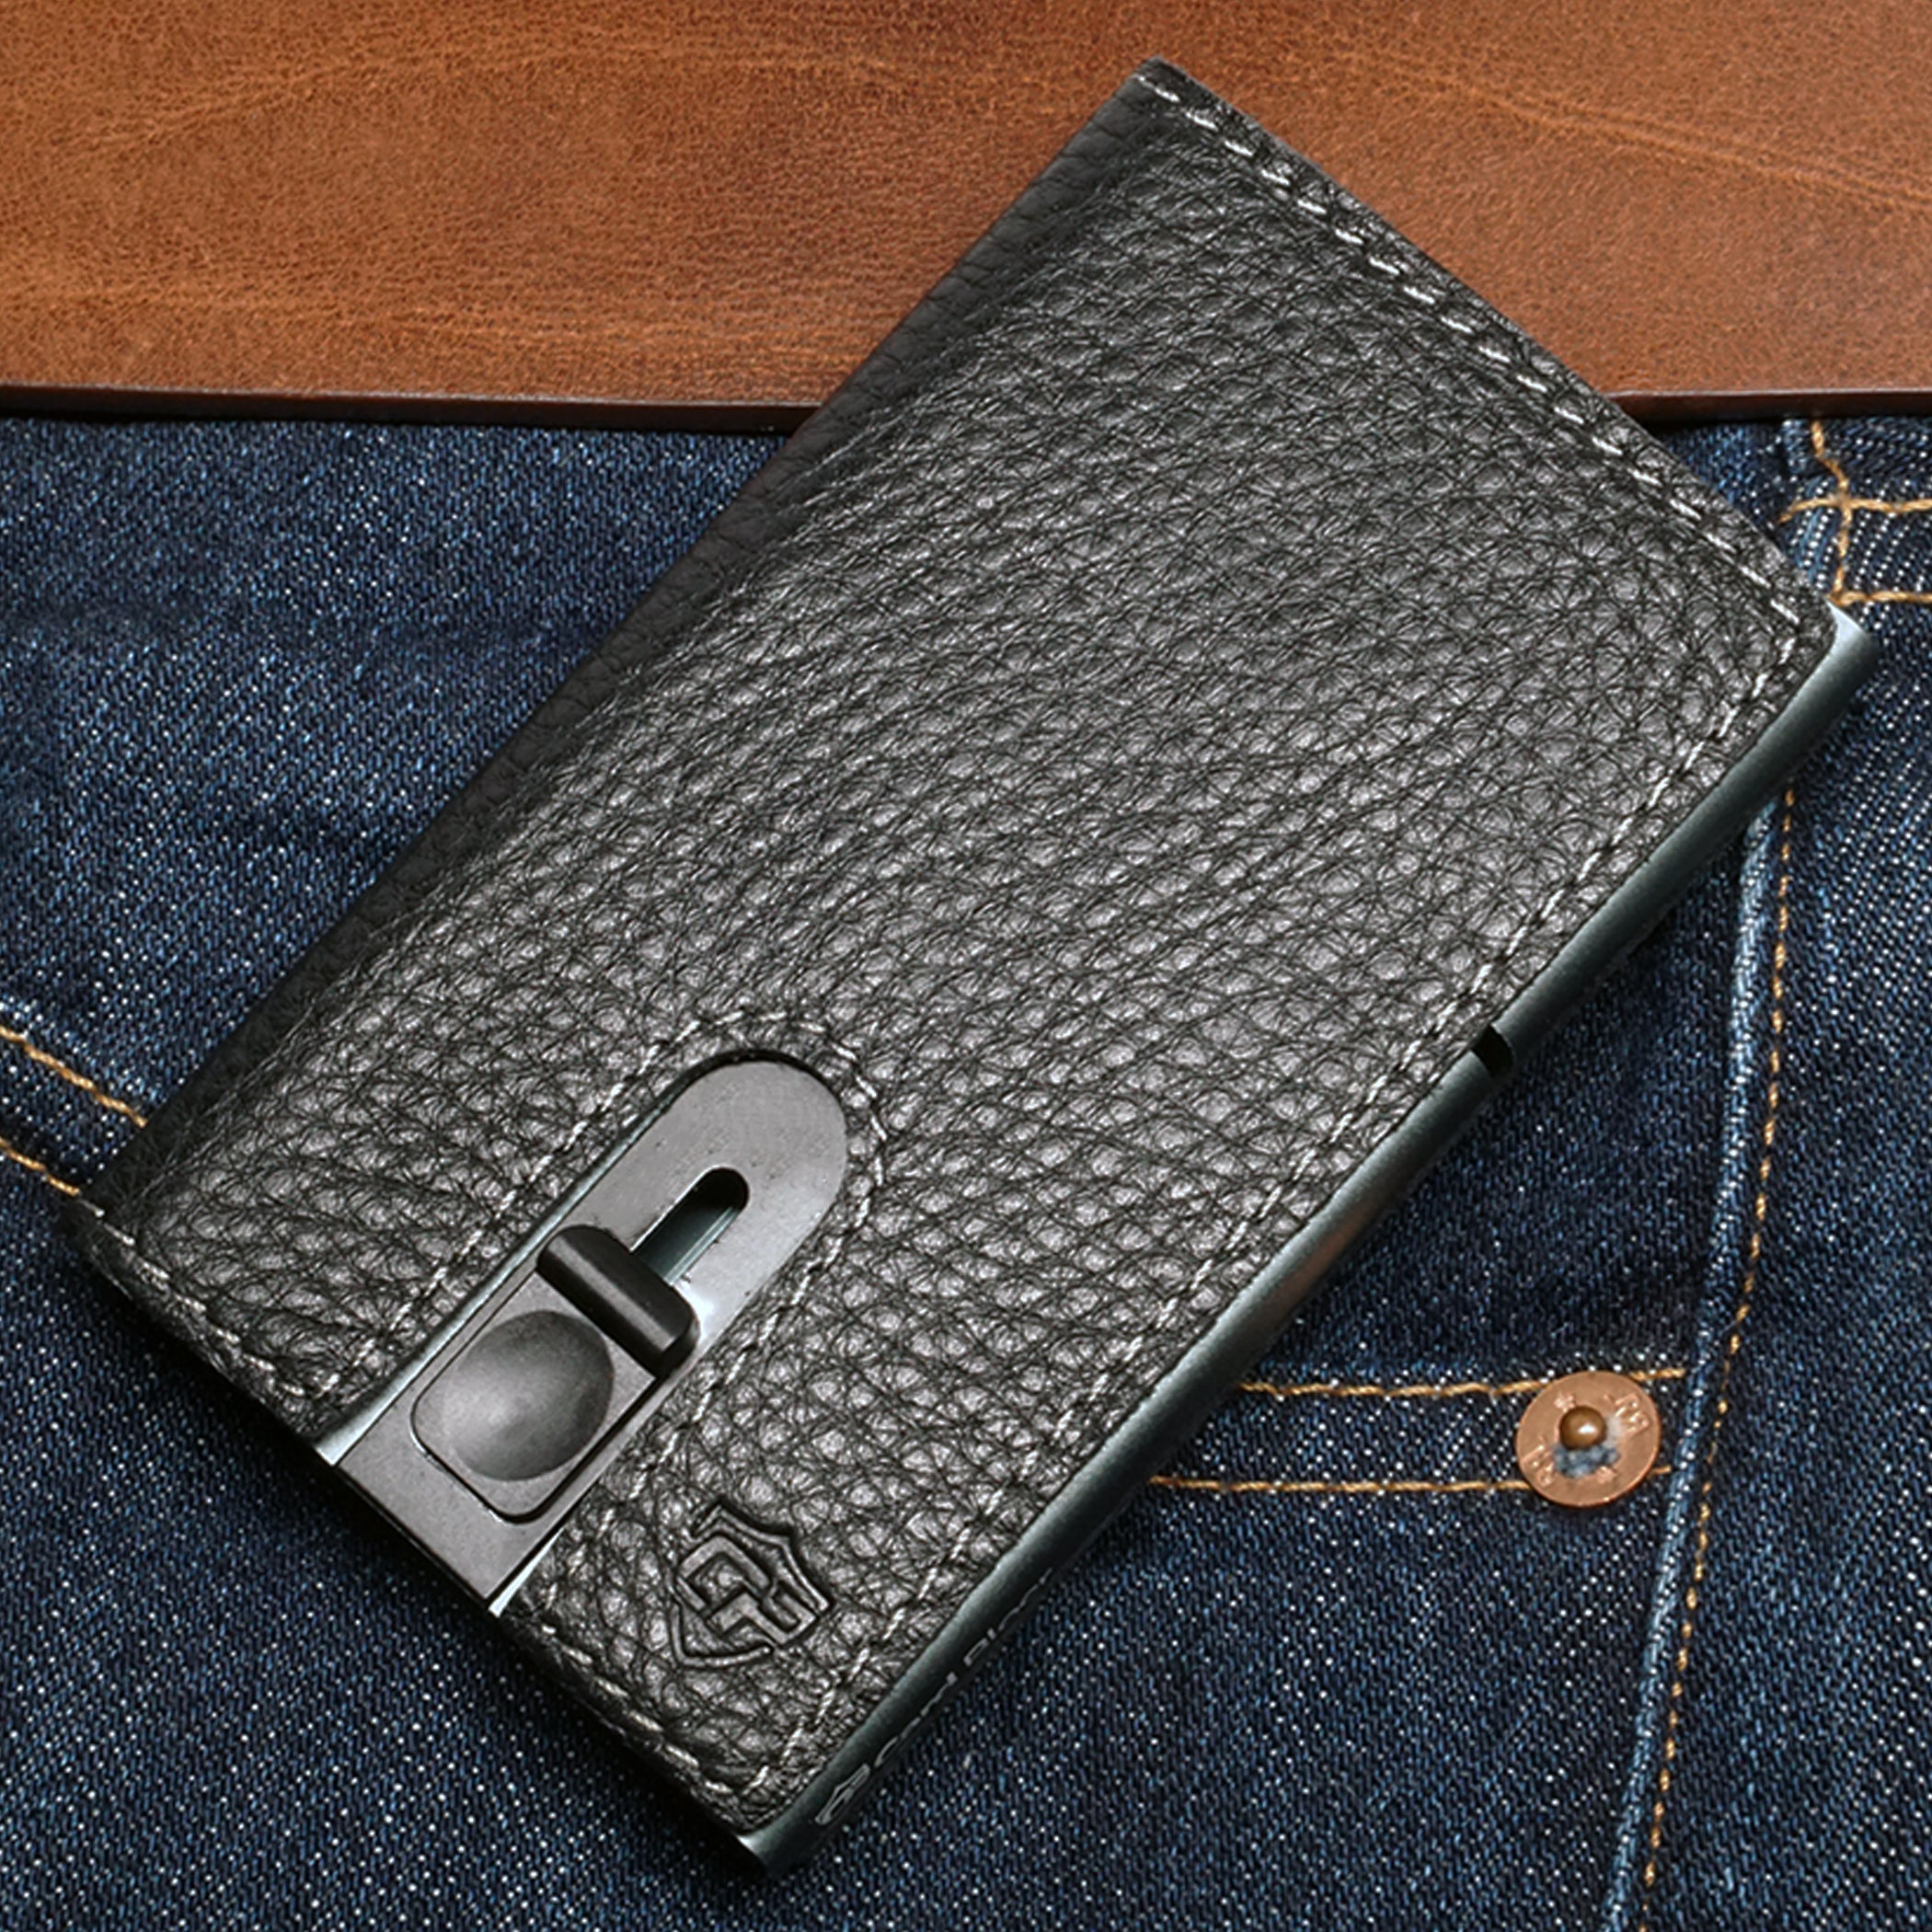 Card Blocr Credit Card Holder in Titanium Color Wrapped in Black Leather | RFID Wallet Front Pocket